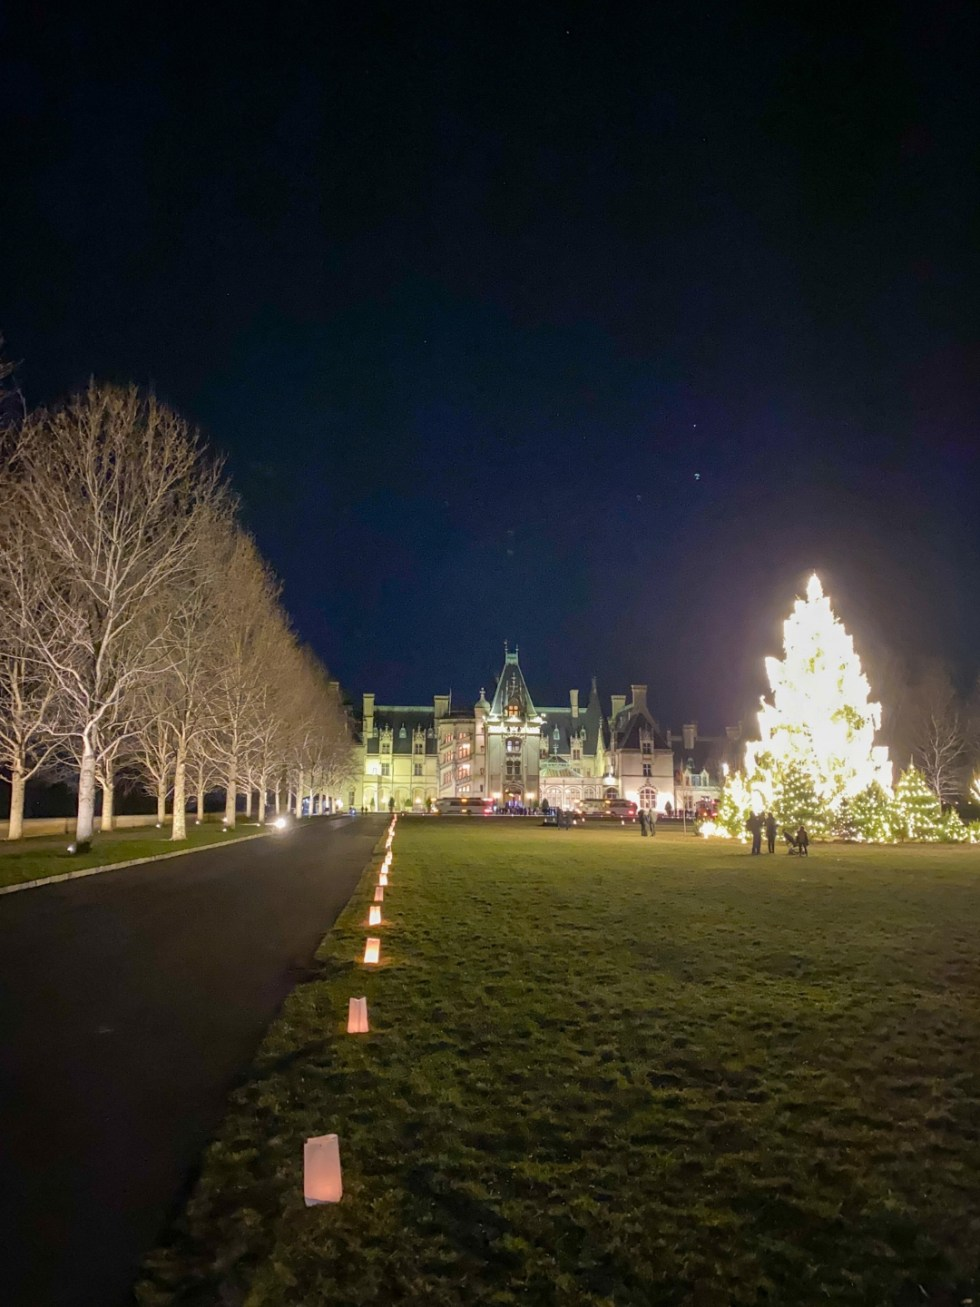 Christmas in Asheville: a Weekend Getaway During the Holidays - I'm Fixin' To - @imfixintoblog |Christmas in Asheville NC by popular NC lifestyle blog, I'm Fixin' To: image of Biltmore House.